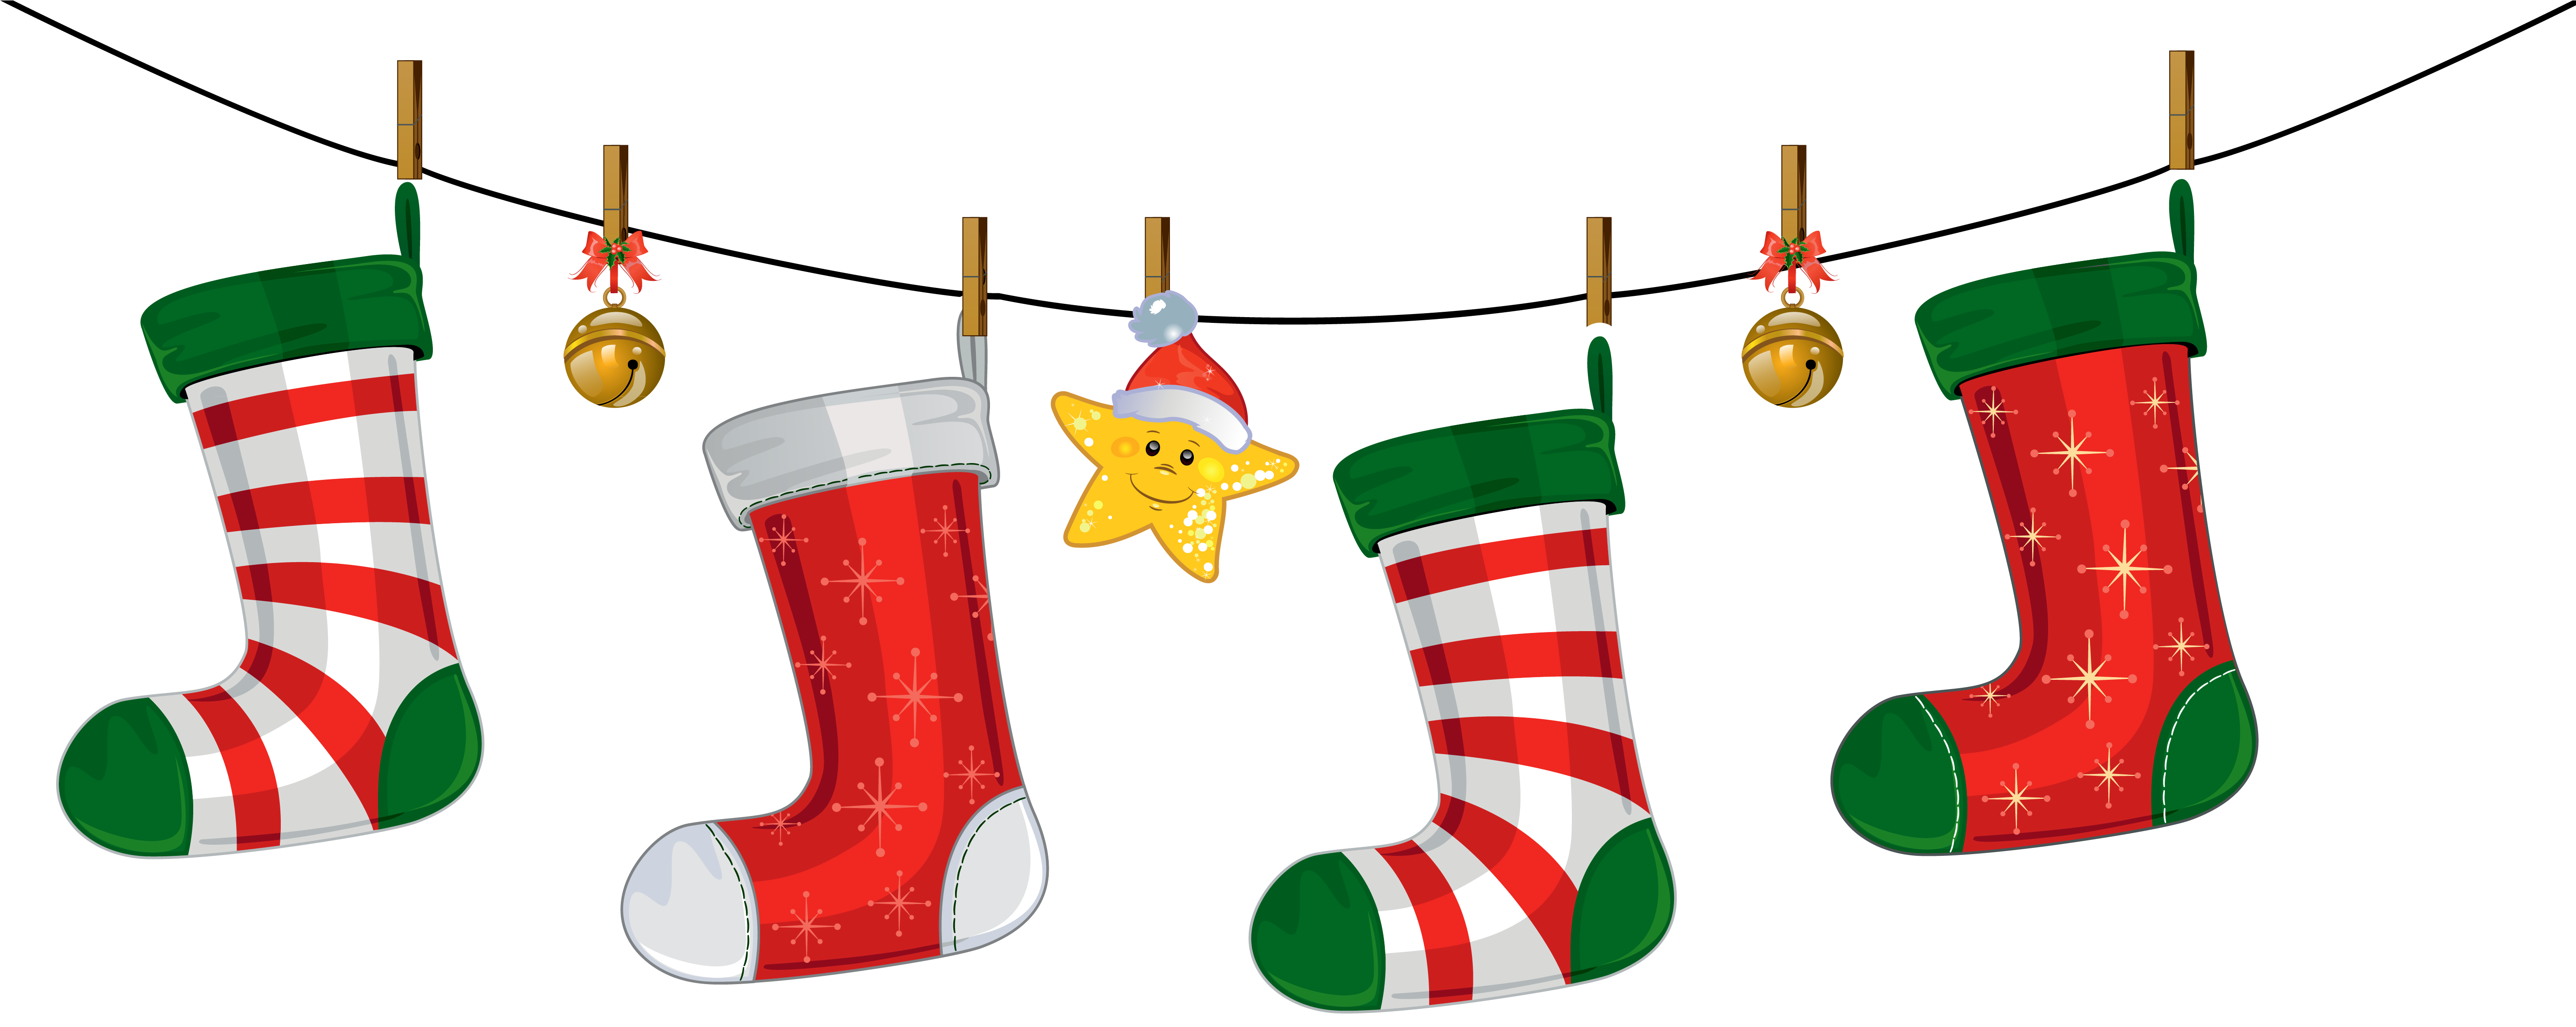 Christmas Decorations Cliparts Christmas Decorations Clipart Full Size Png Download Seekpng